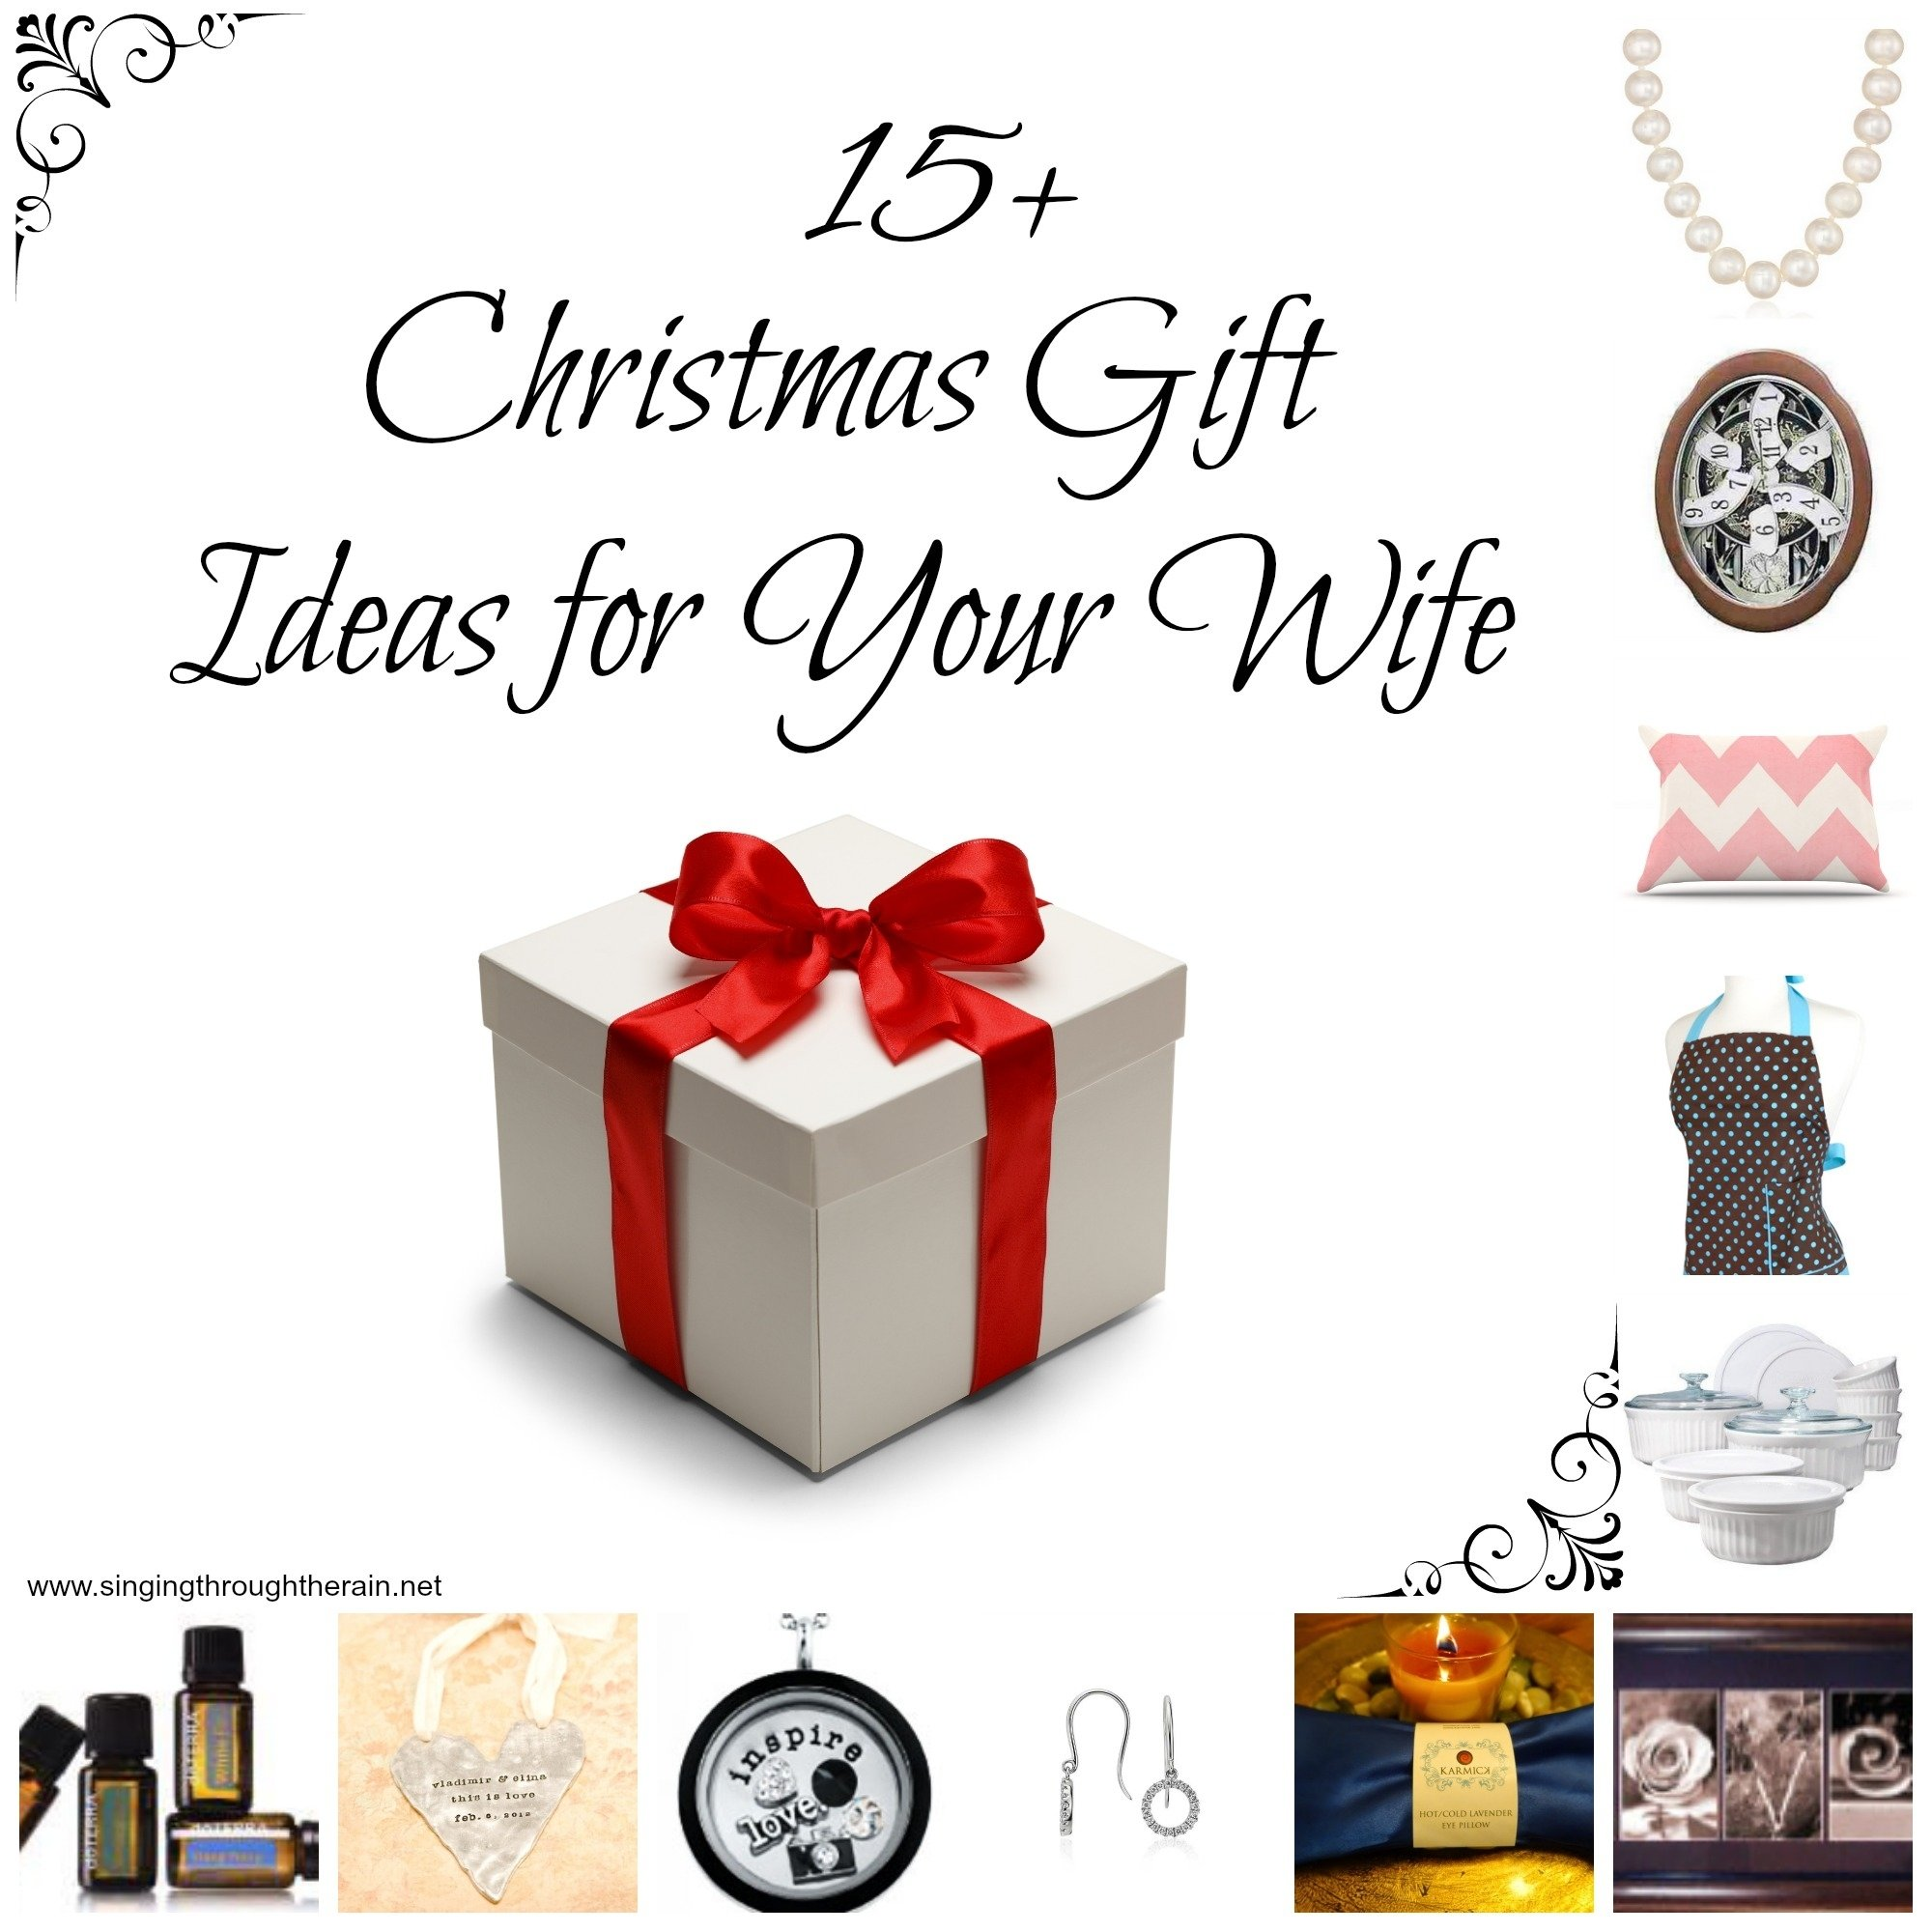 10 Gorgeous Christmas Gift Ideas For Wives 15 christmas gift ideas for your wife singing through the rain 11 2021